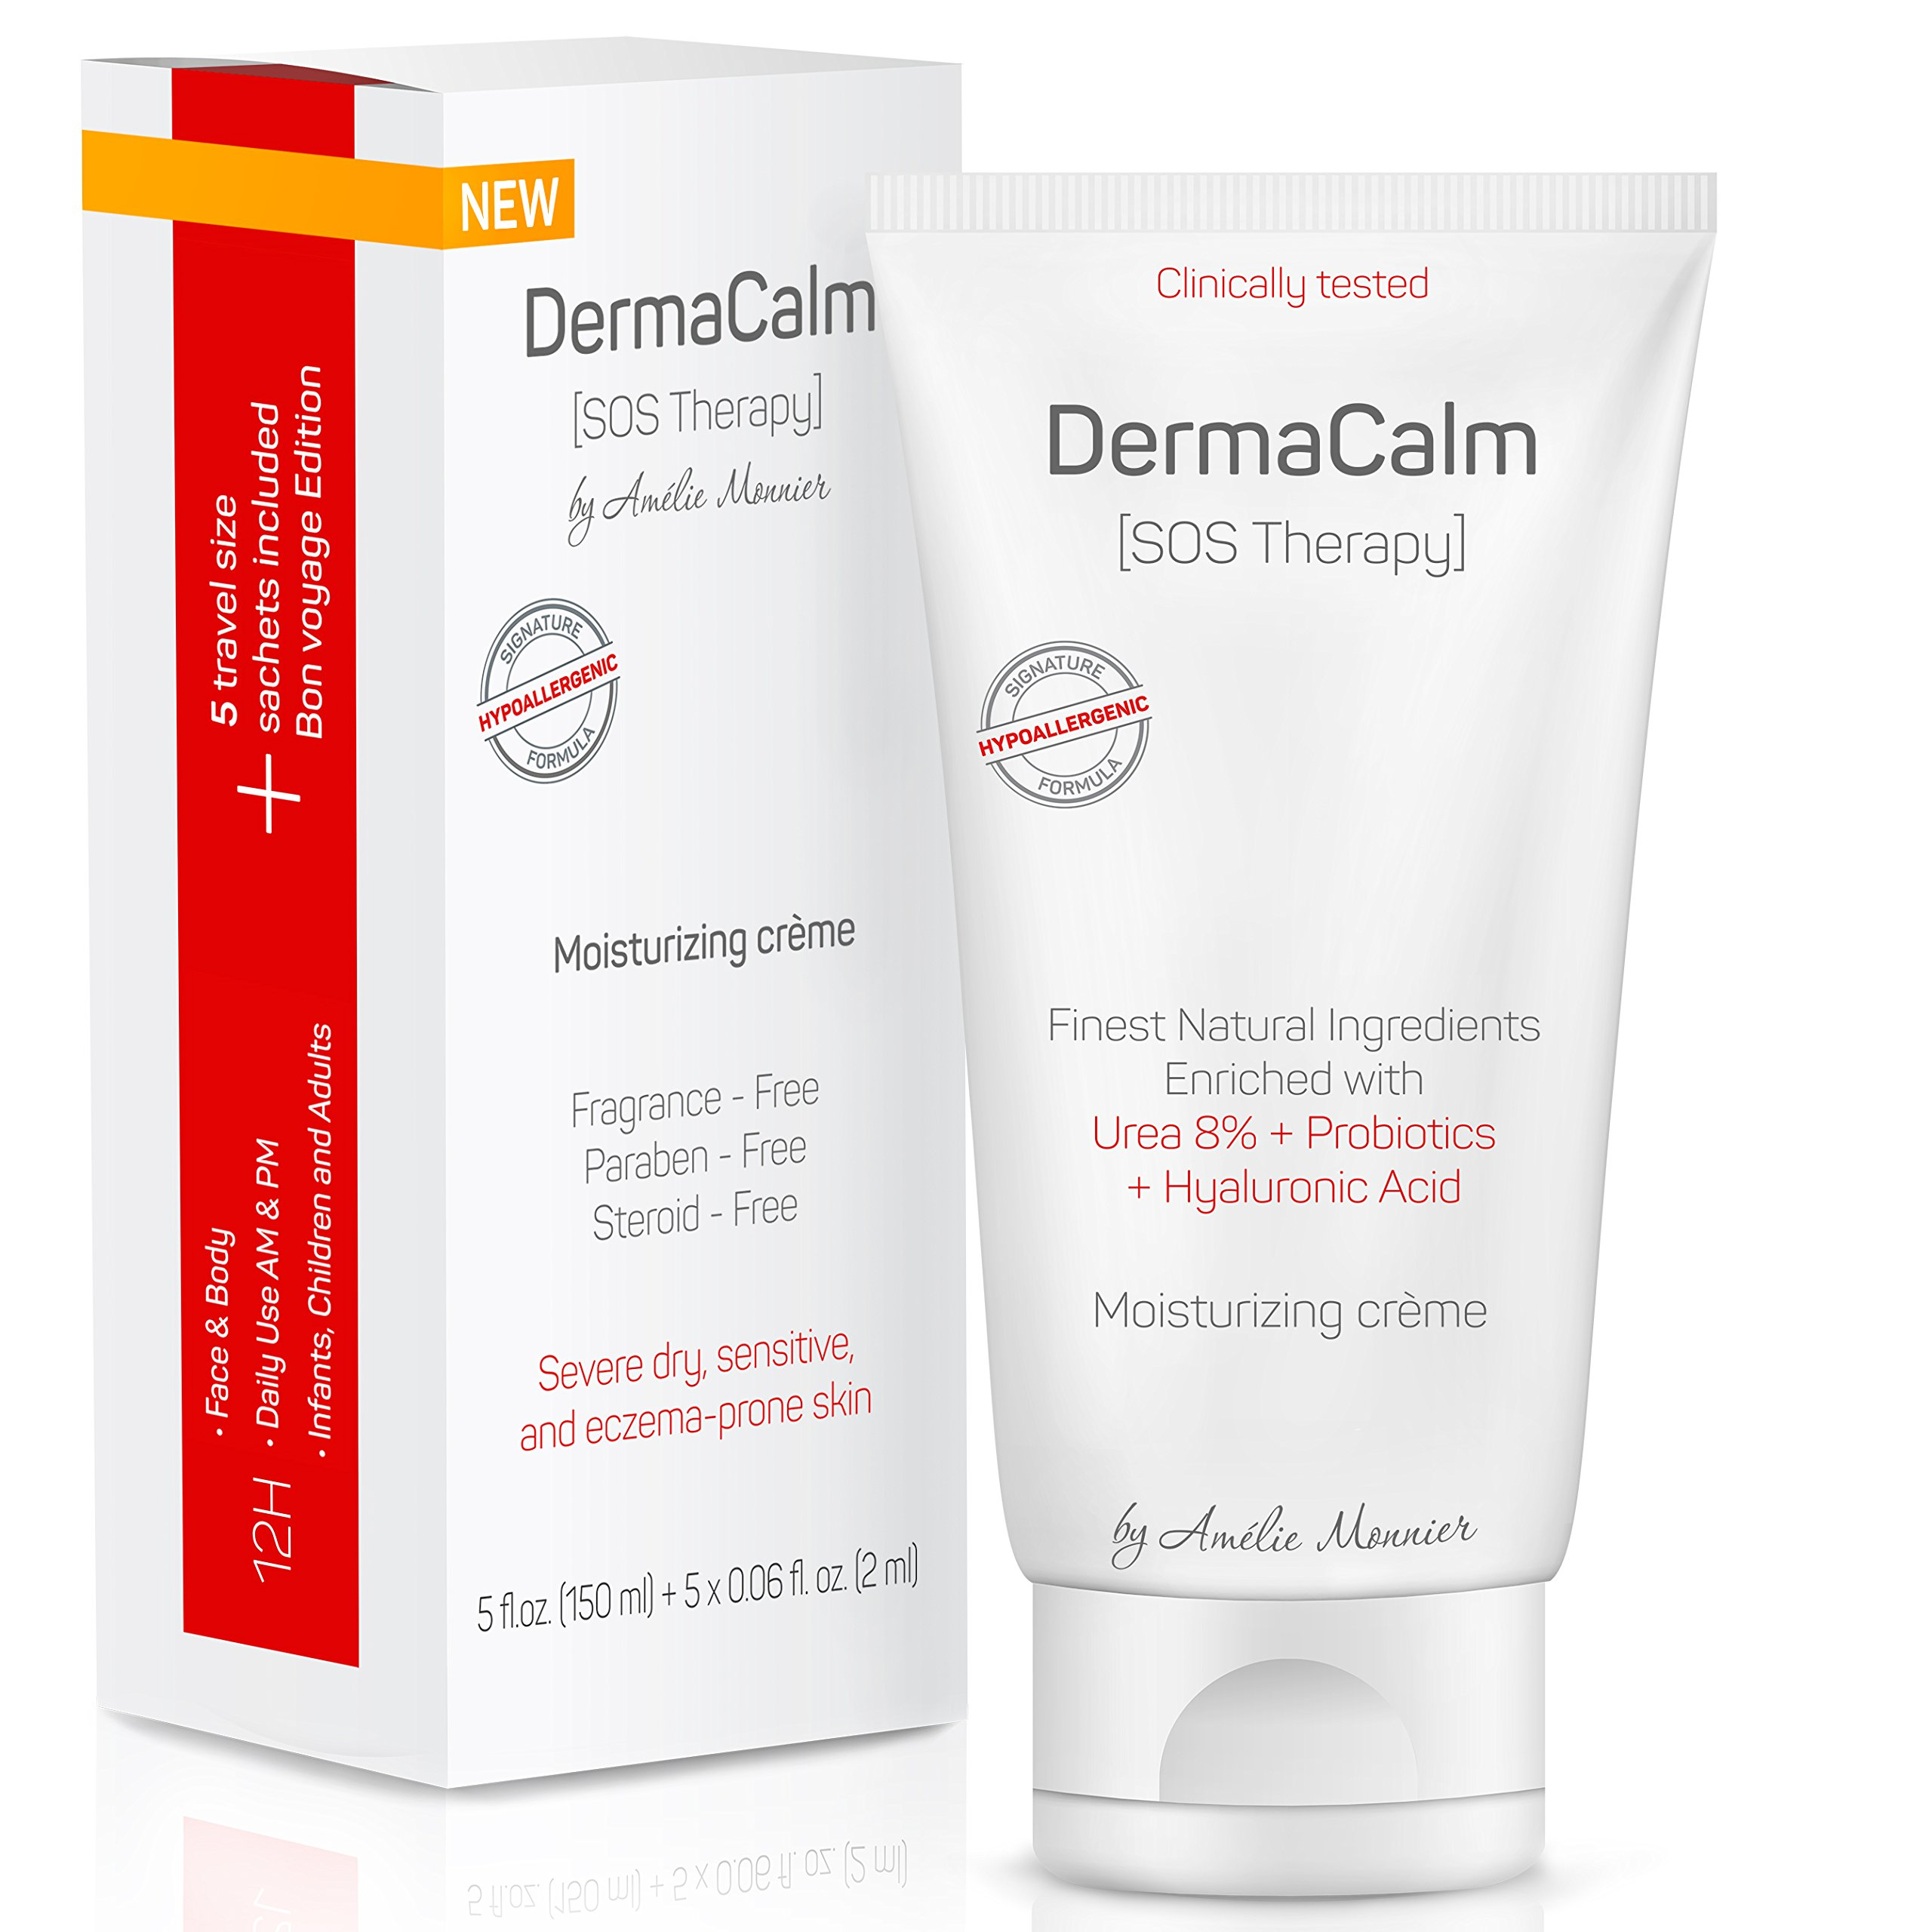 Clinically Tested Cream for Eczema Treatment, Dermatitis and Rashes - Urea 8%, Probiotics w/Best Natural Ingredients - Face & Body Moisturizer - Repairs Severely Dry, Itchy, Irritated Skin. Lotion